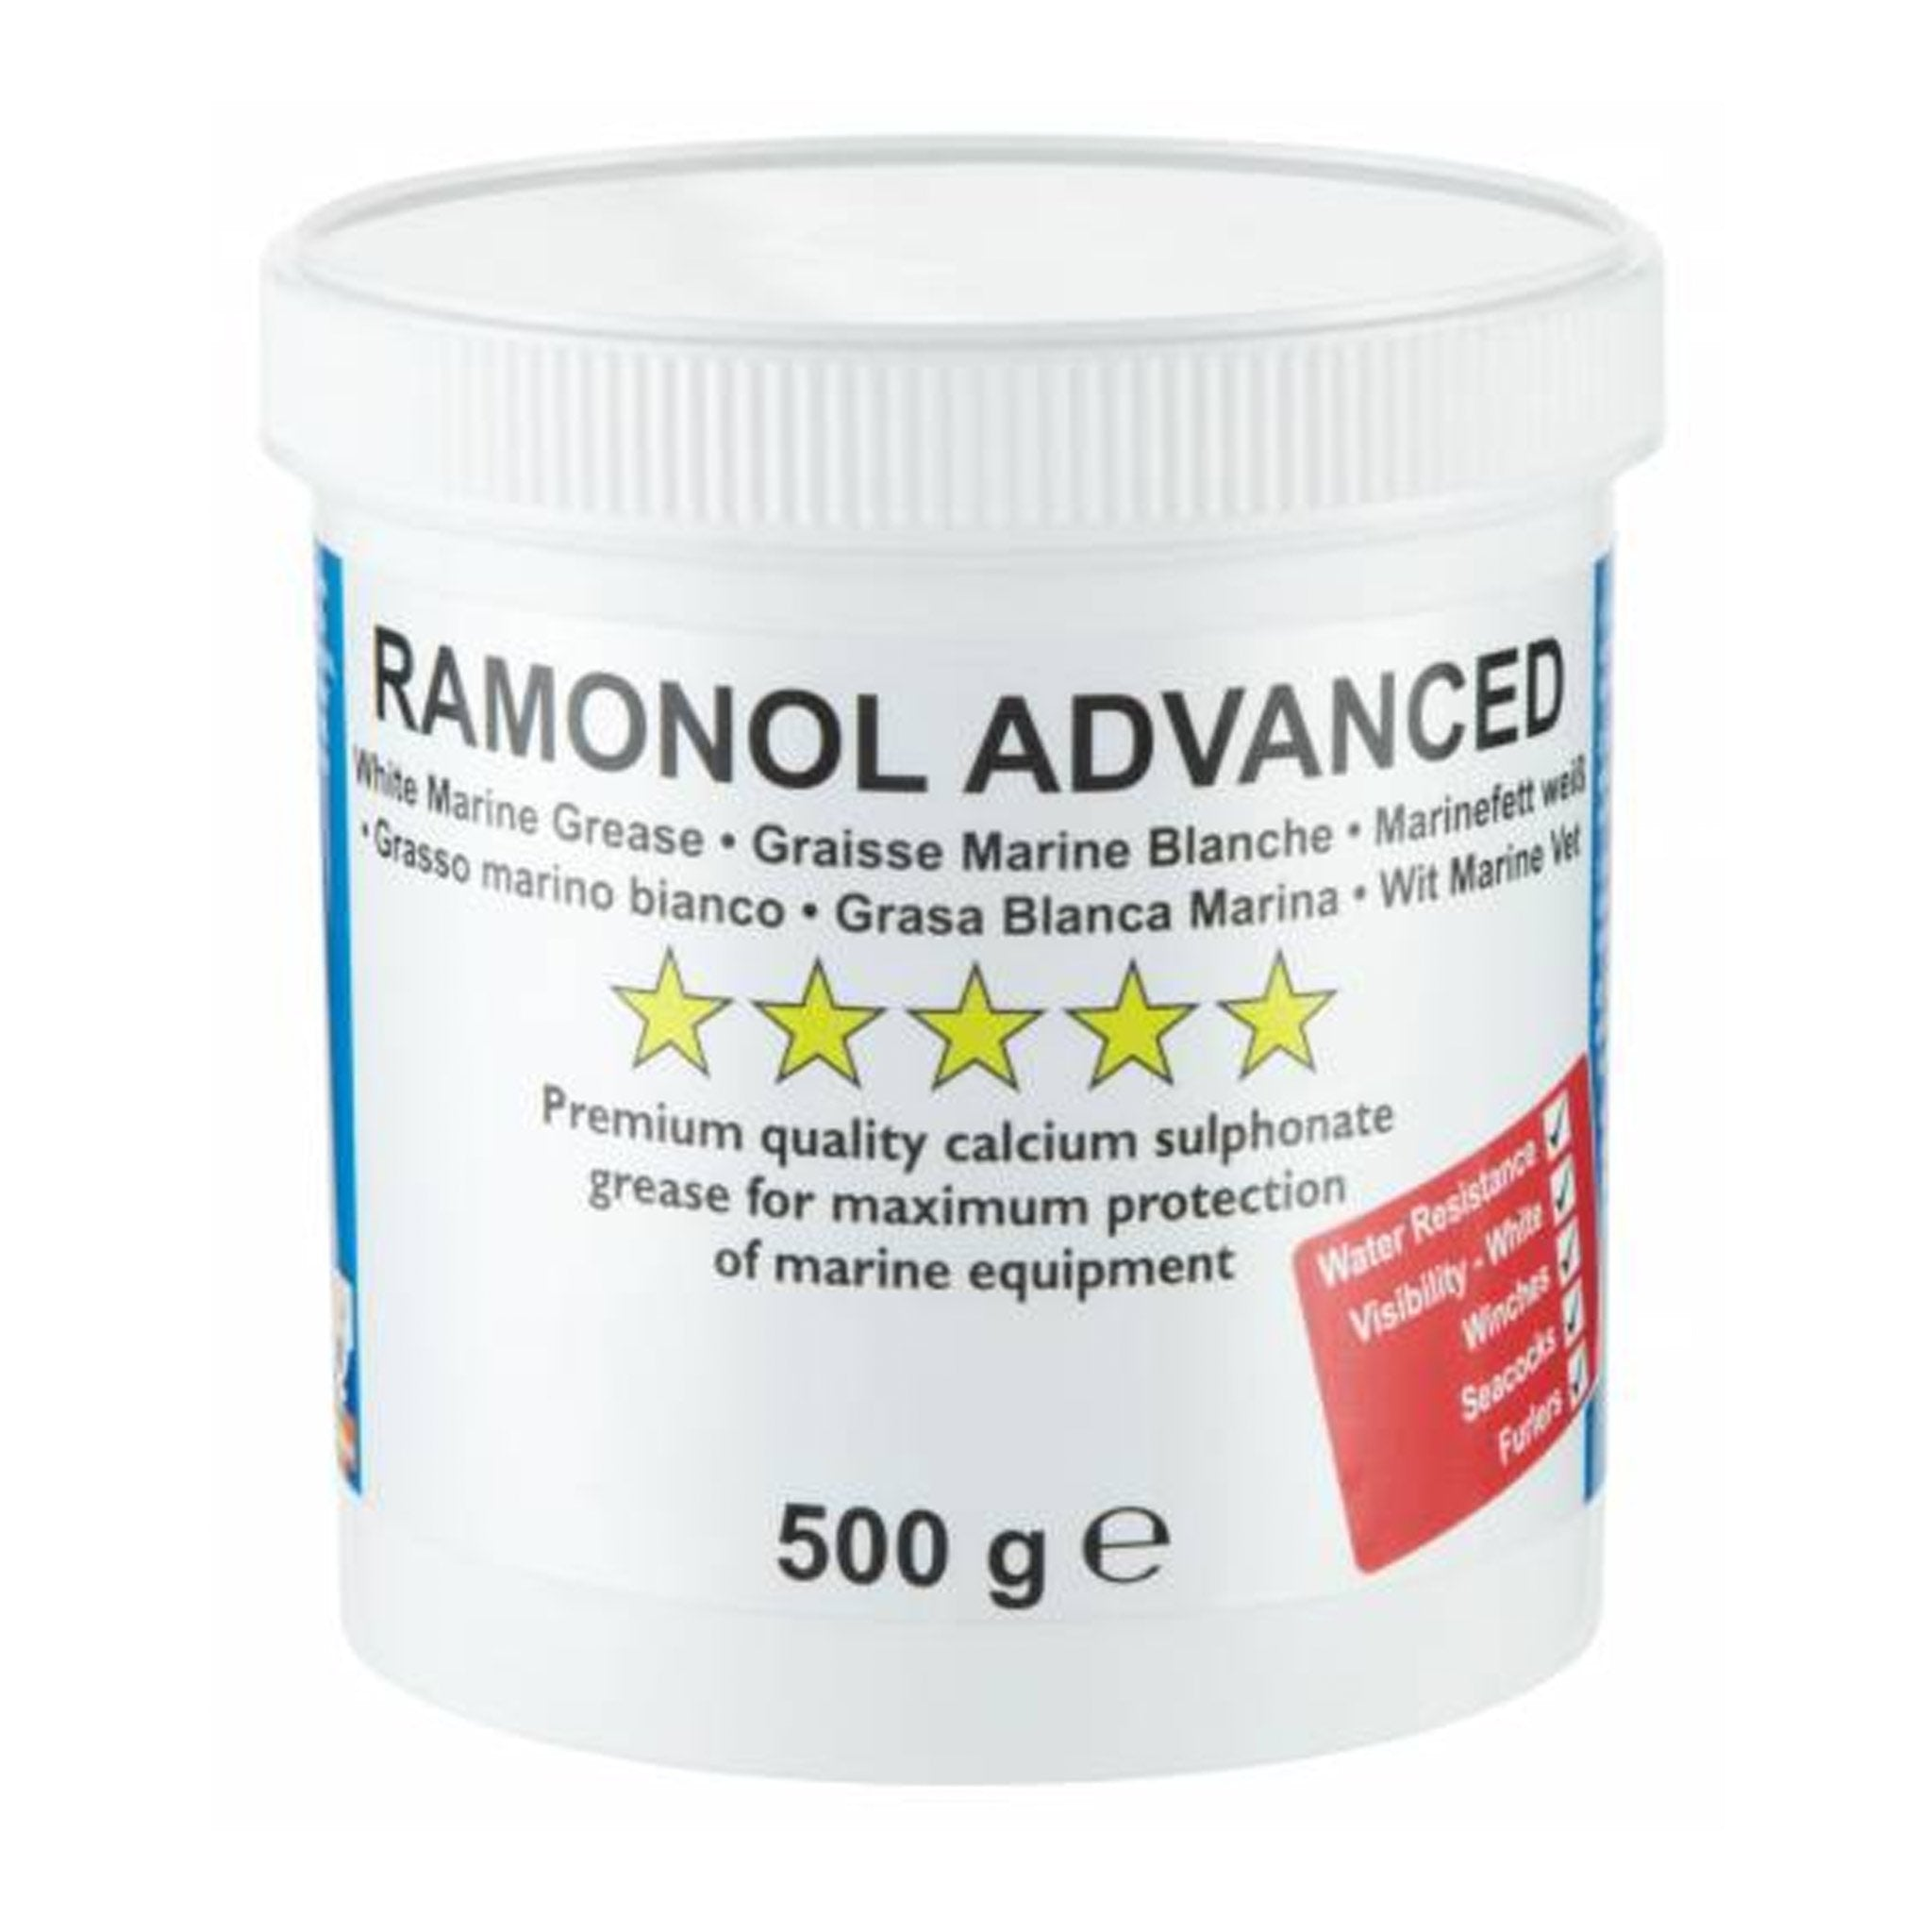 Ramonol Advanced White Grease (500 g) - Arthur Beale